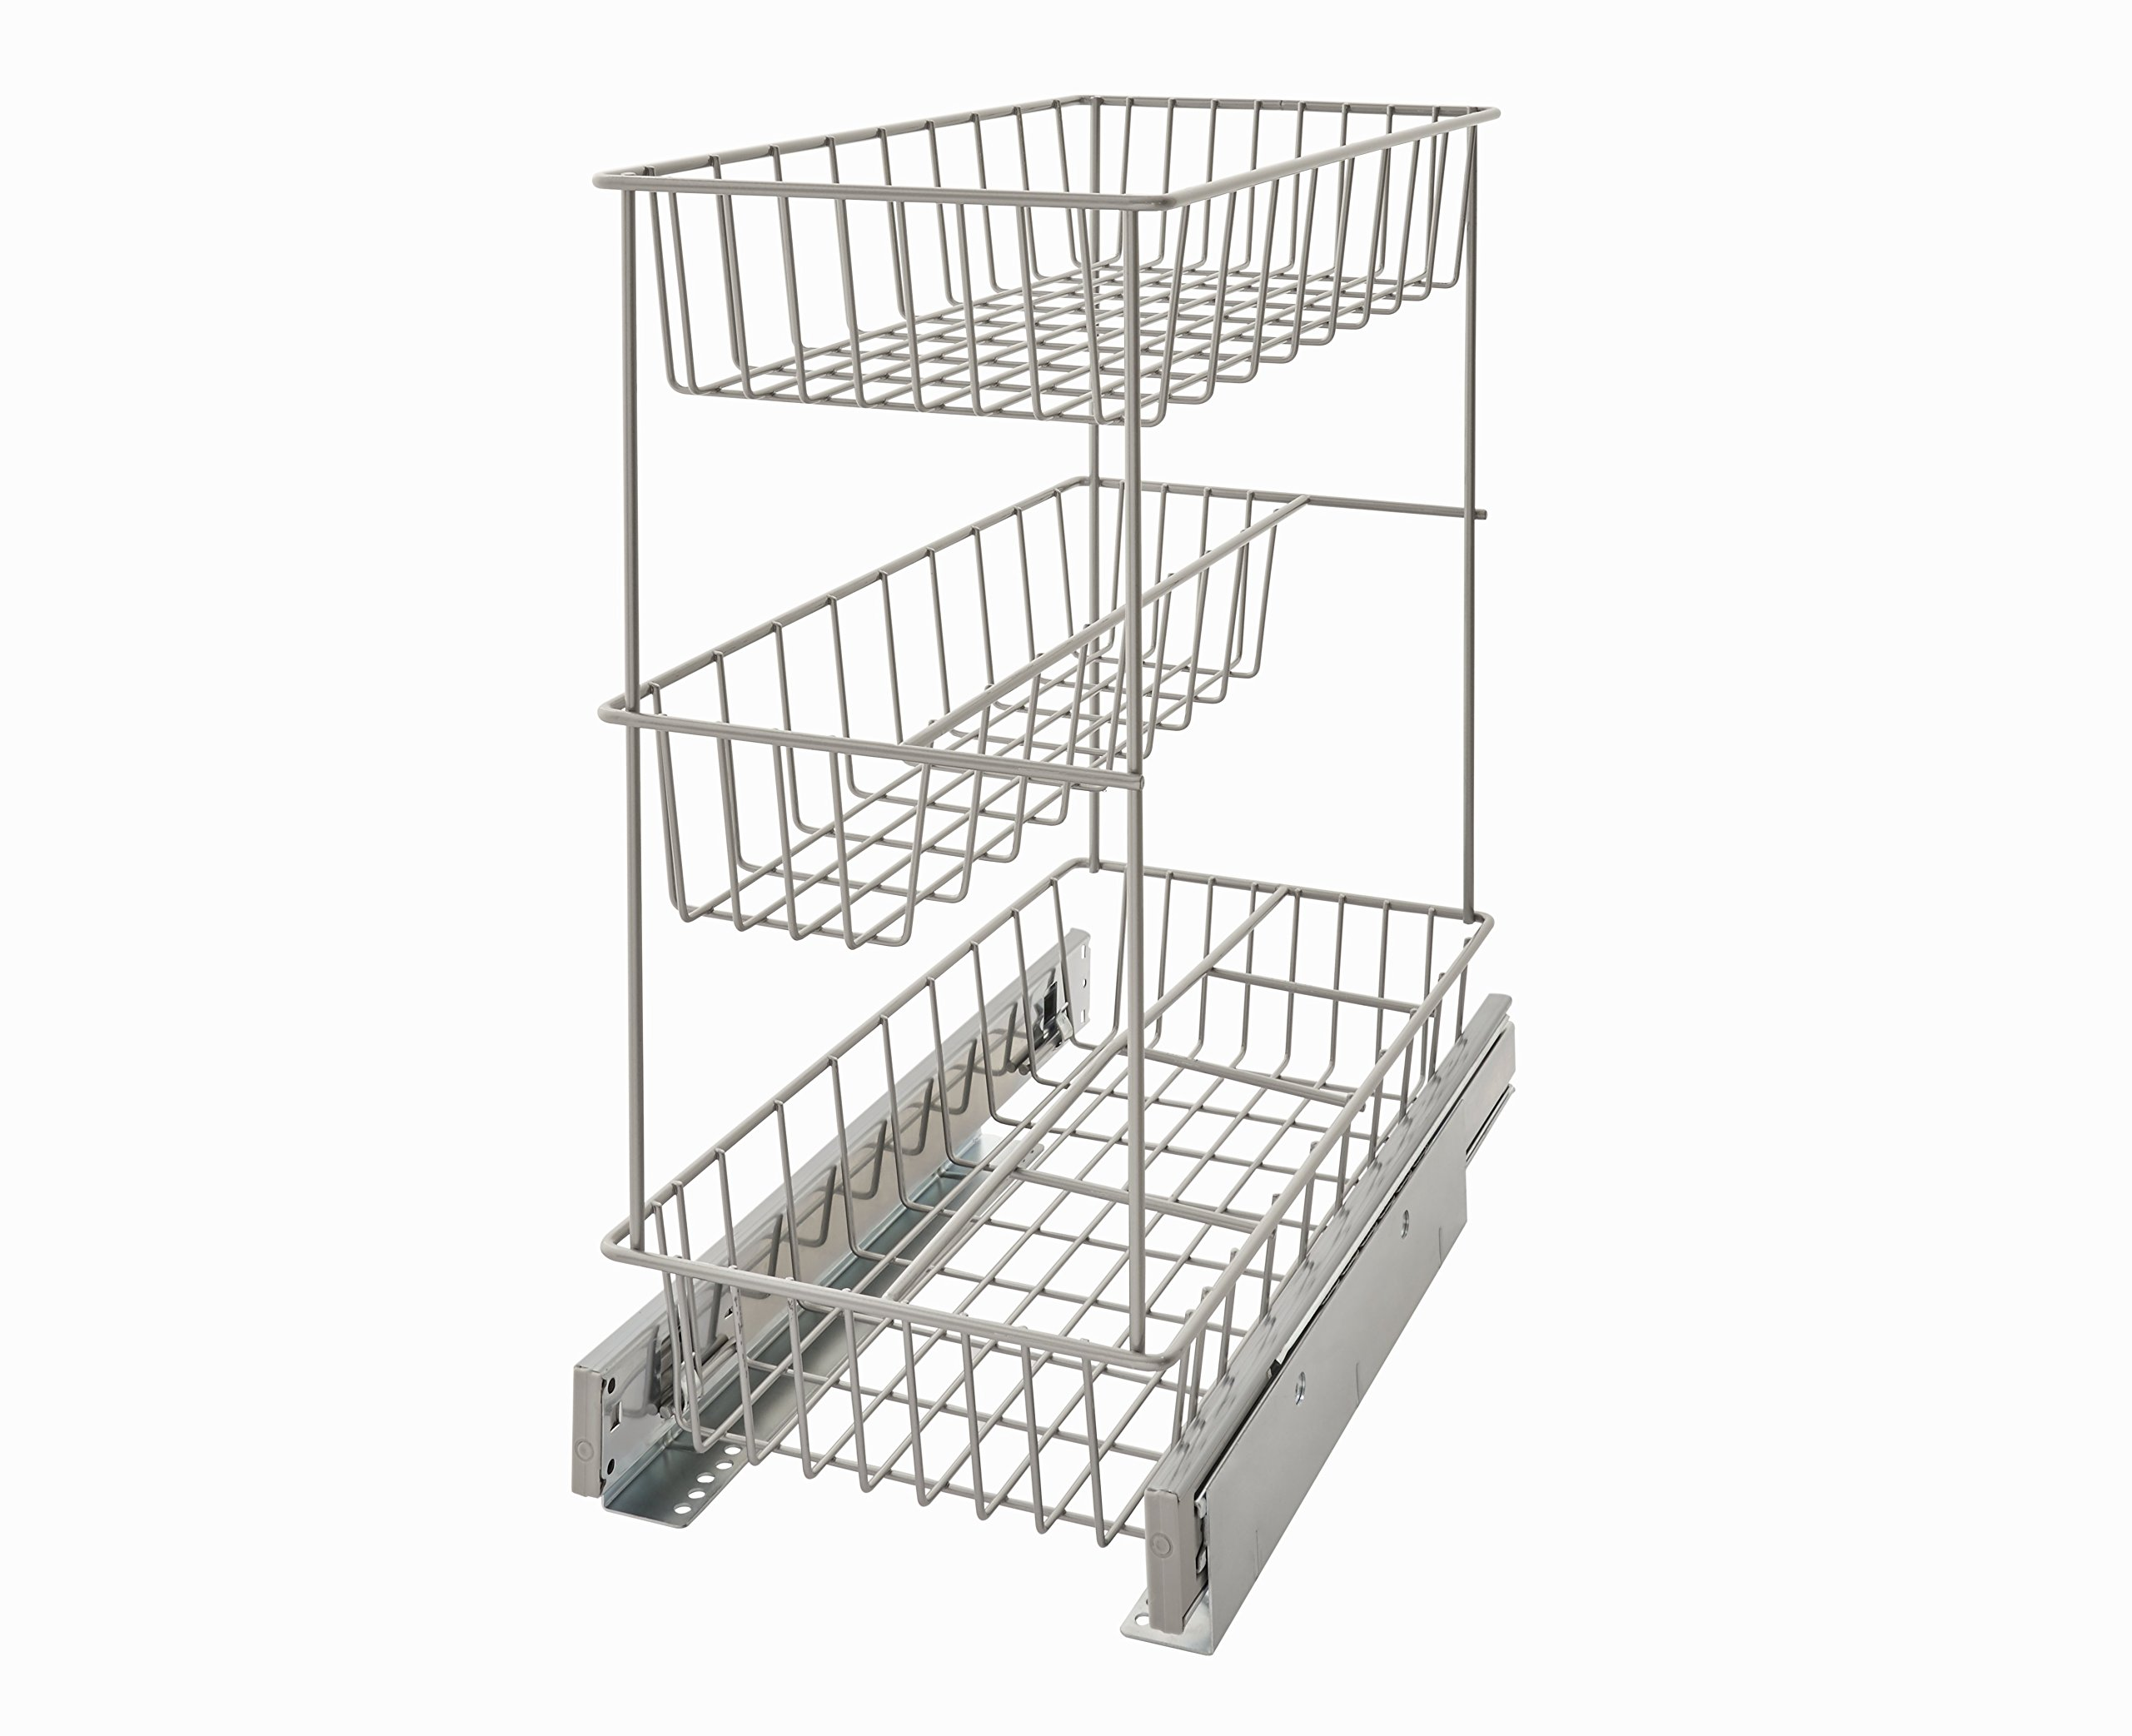 ClosetMaid 32105 Premium 8.75'' Wide Three Tier Compact Kitchen Cabinet Pull Out Basket, Three-Basket Narrow